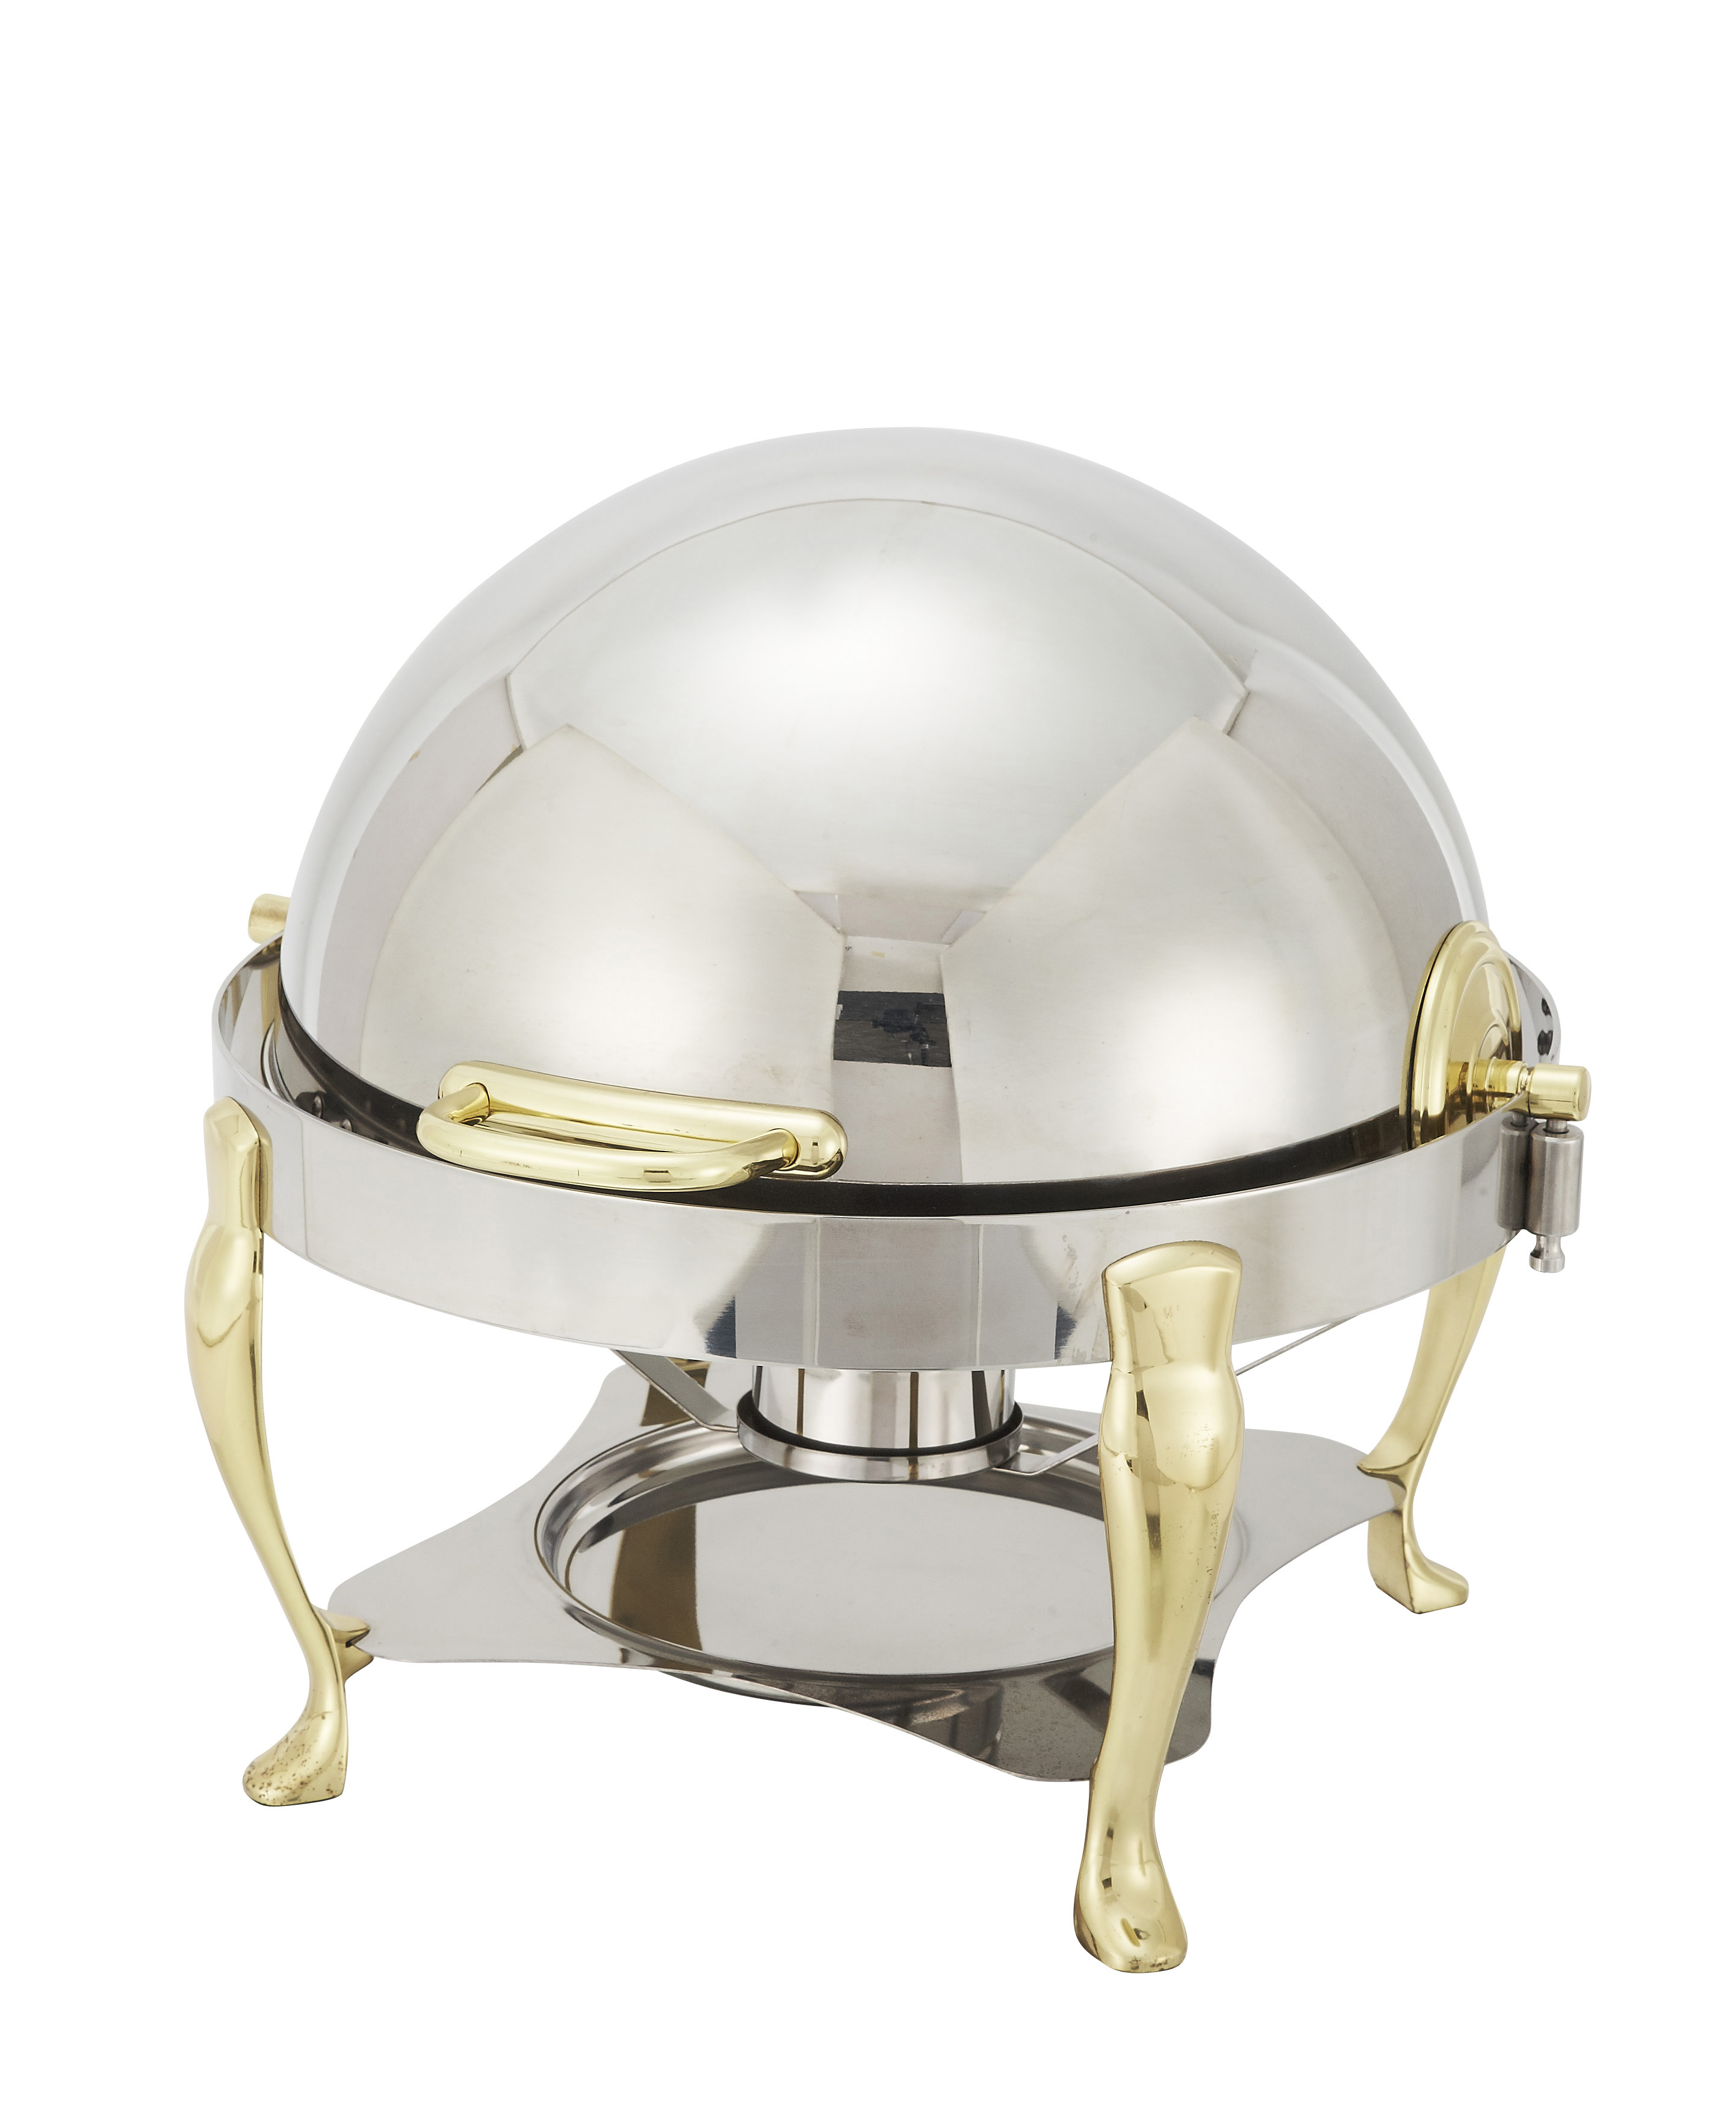 6 Qt, Roll Top Chafer, Round